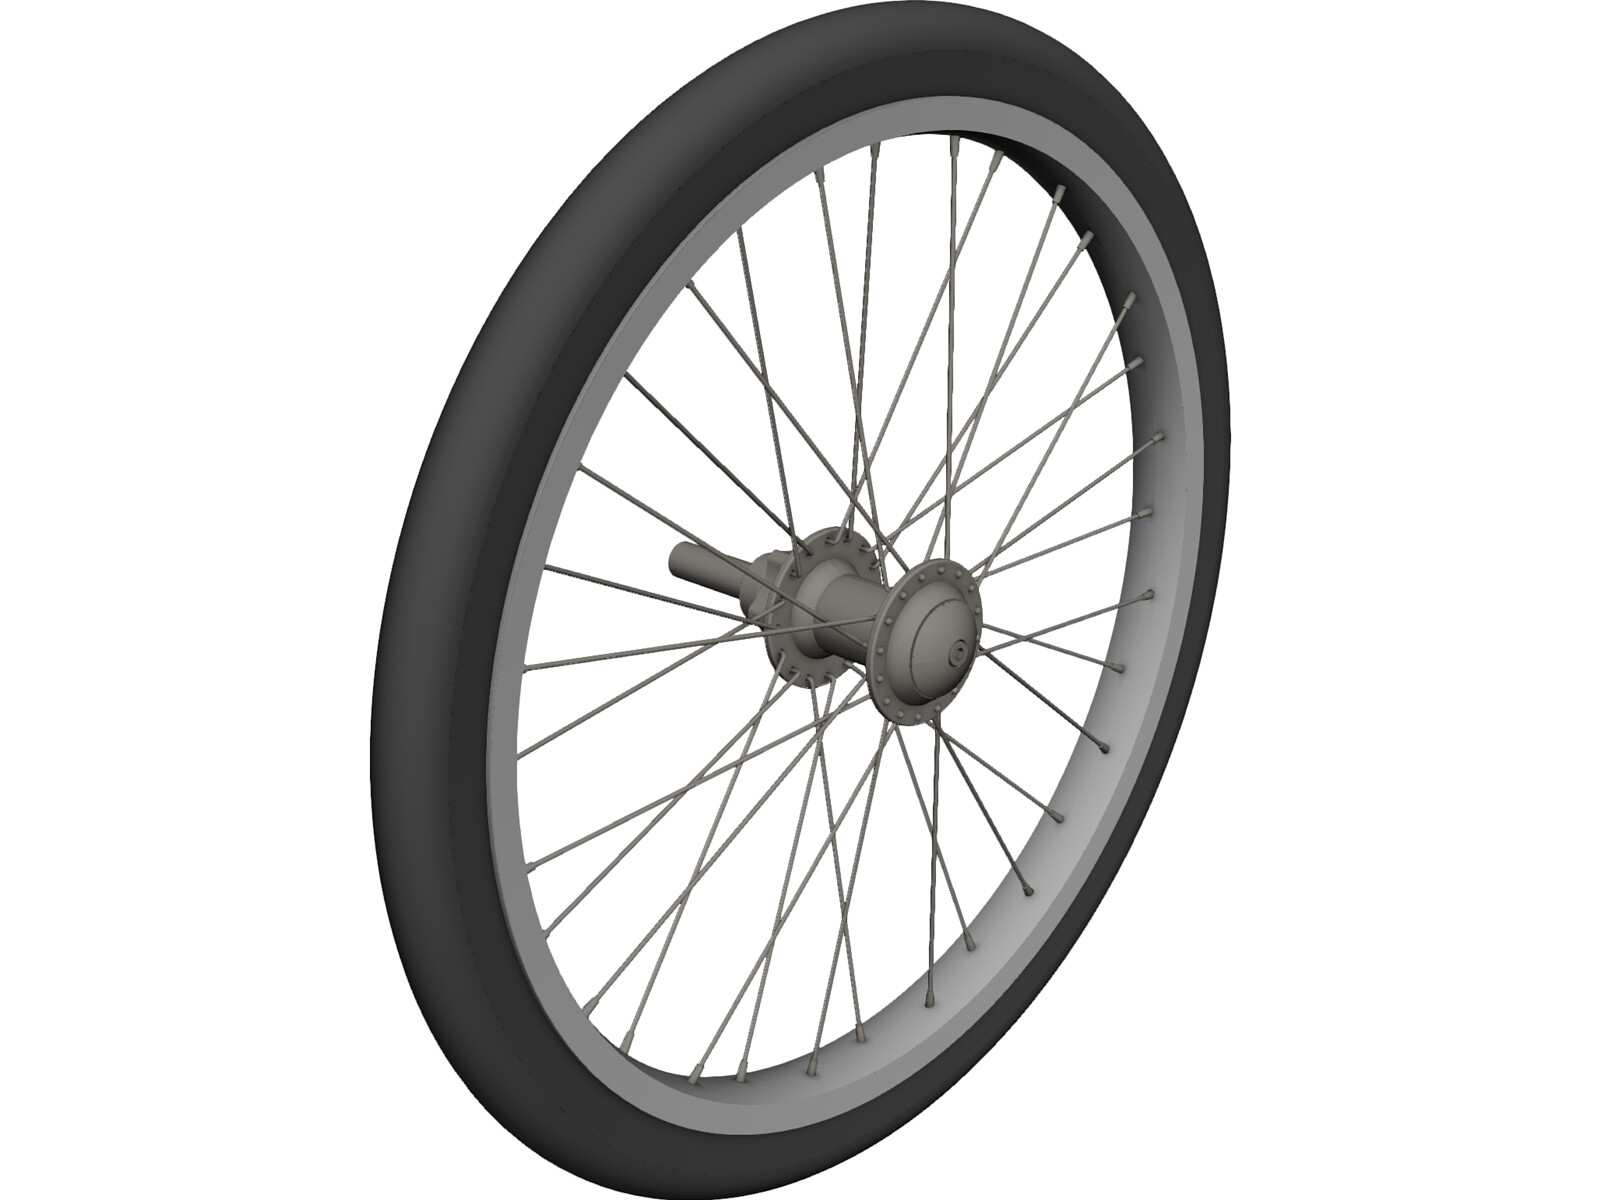 Bicycle wheel 20 3d cad model for autocad solidworks inventor pro